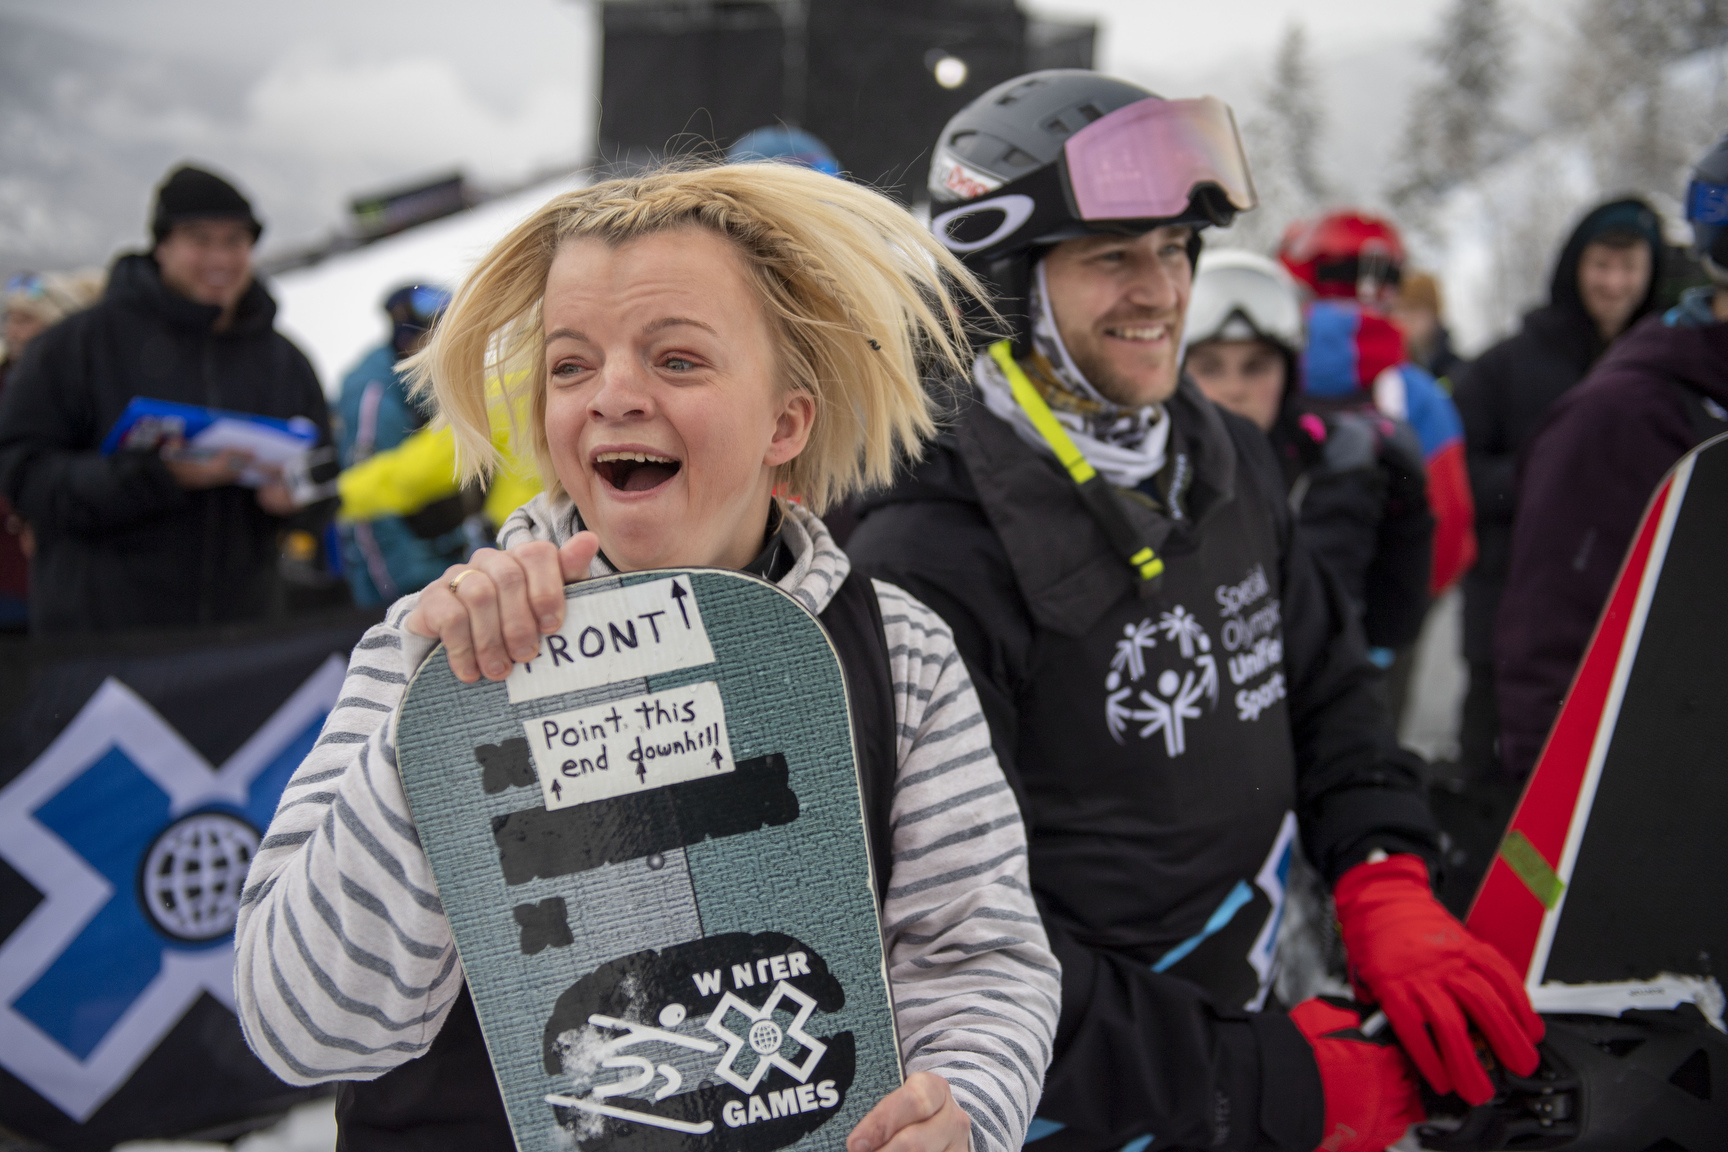 Daina Shilts, Special Olympics Unified Snowboarding